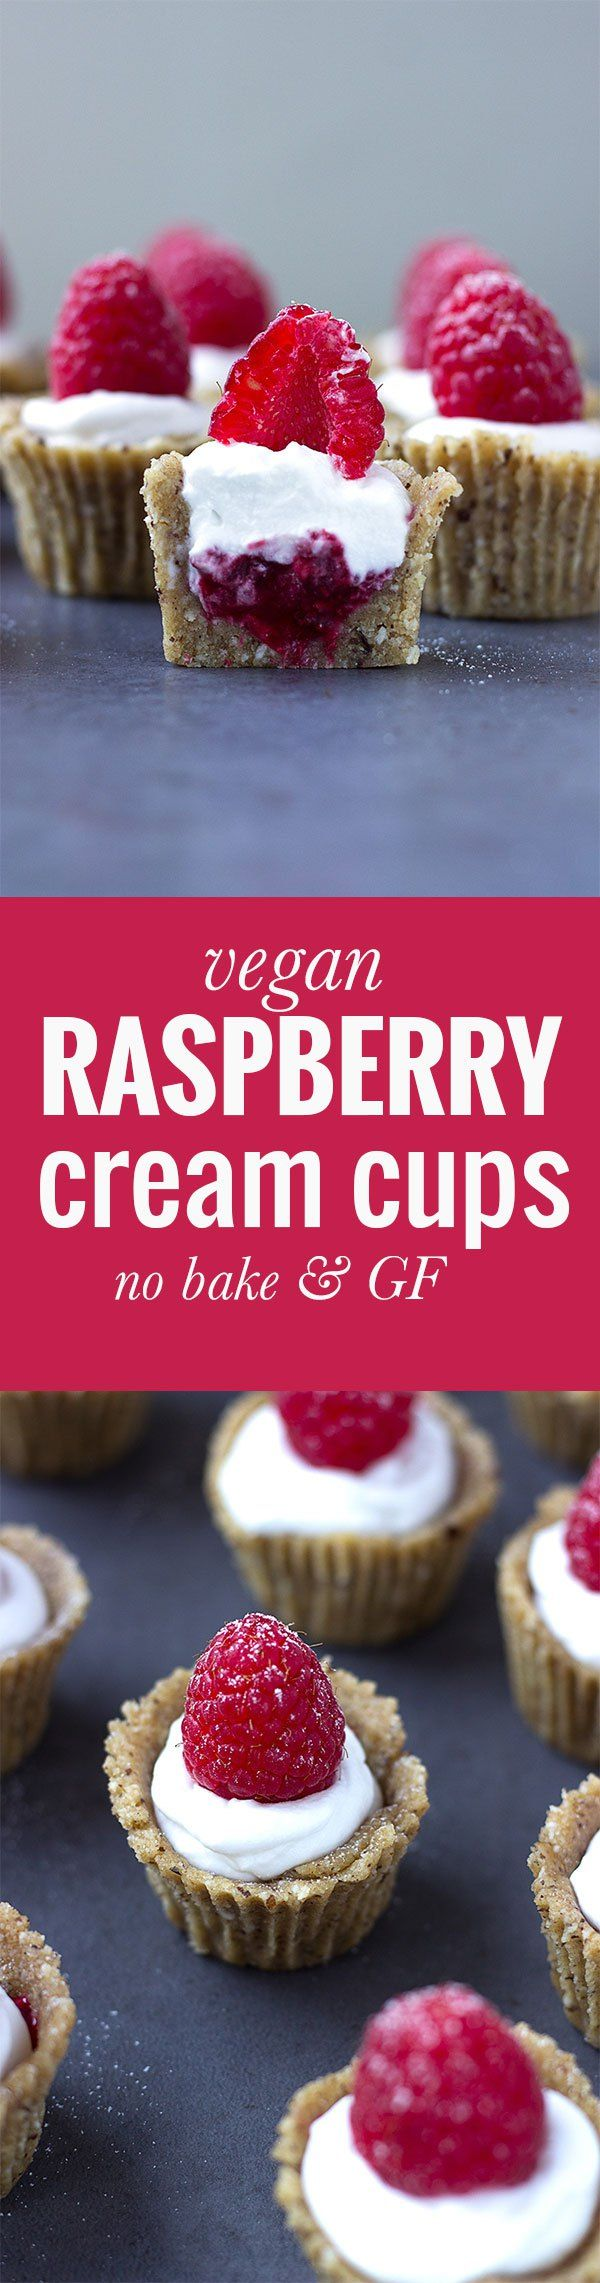 Vegan Raspberry Cream Cups! These no bake sweet treats are gluten free, grain free and refined sugar free! Get the recipe http://nutritionistmeetschef.com